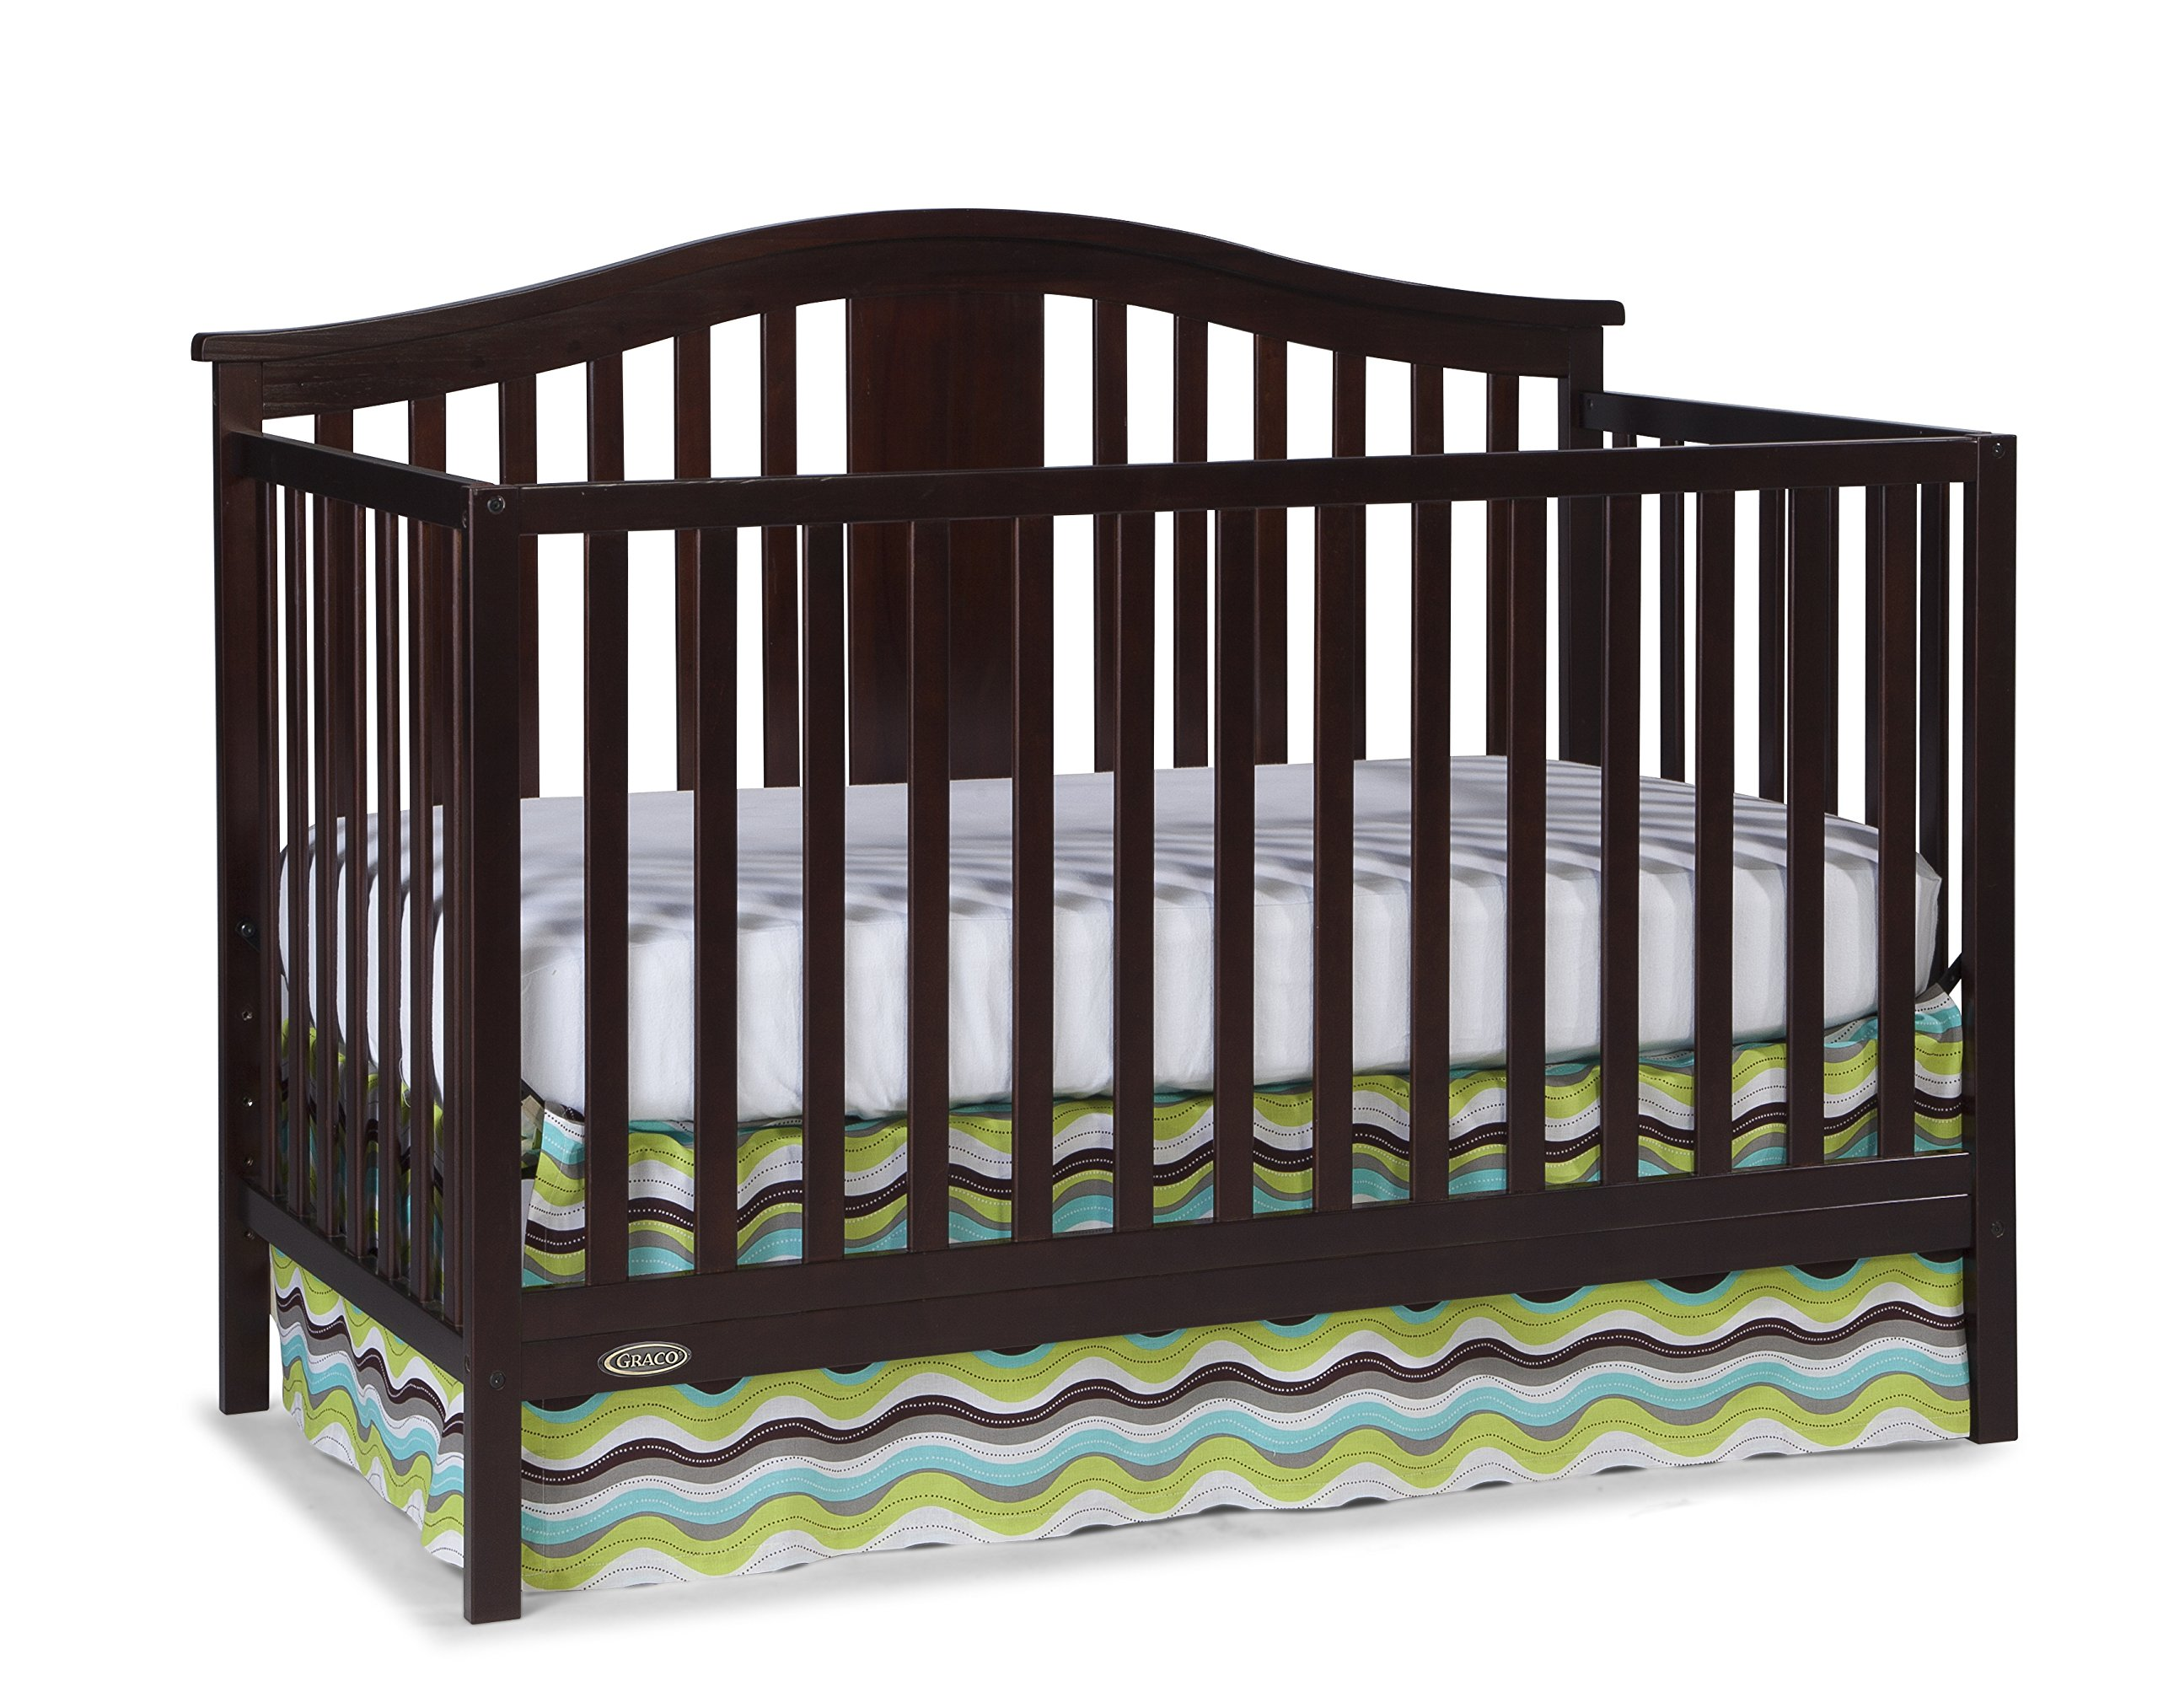 Graco Solano 4-in-1 Convertible Crib and Bonus Mattress, Espresso